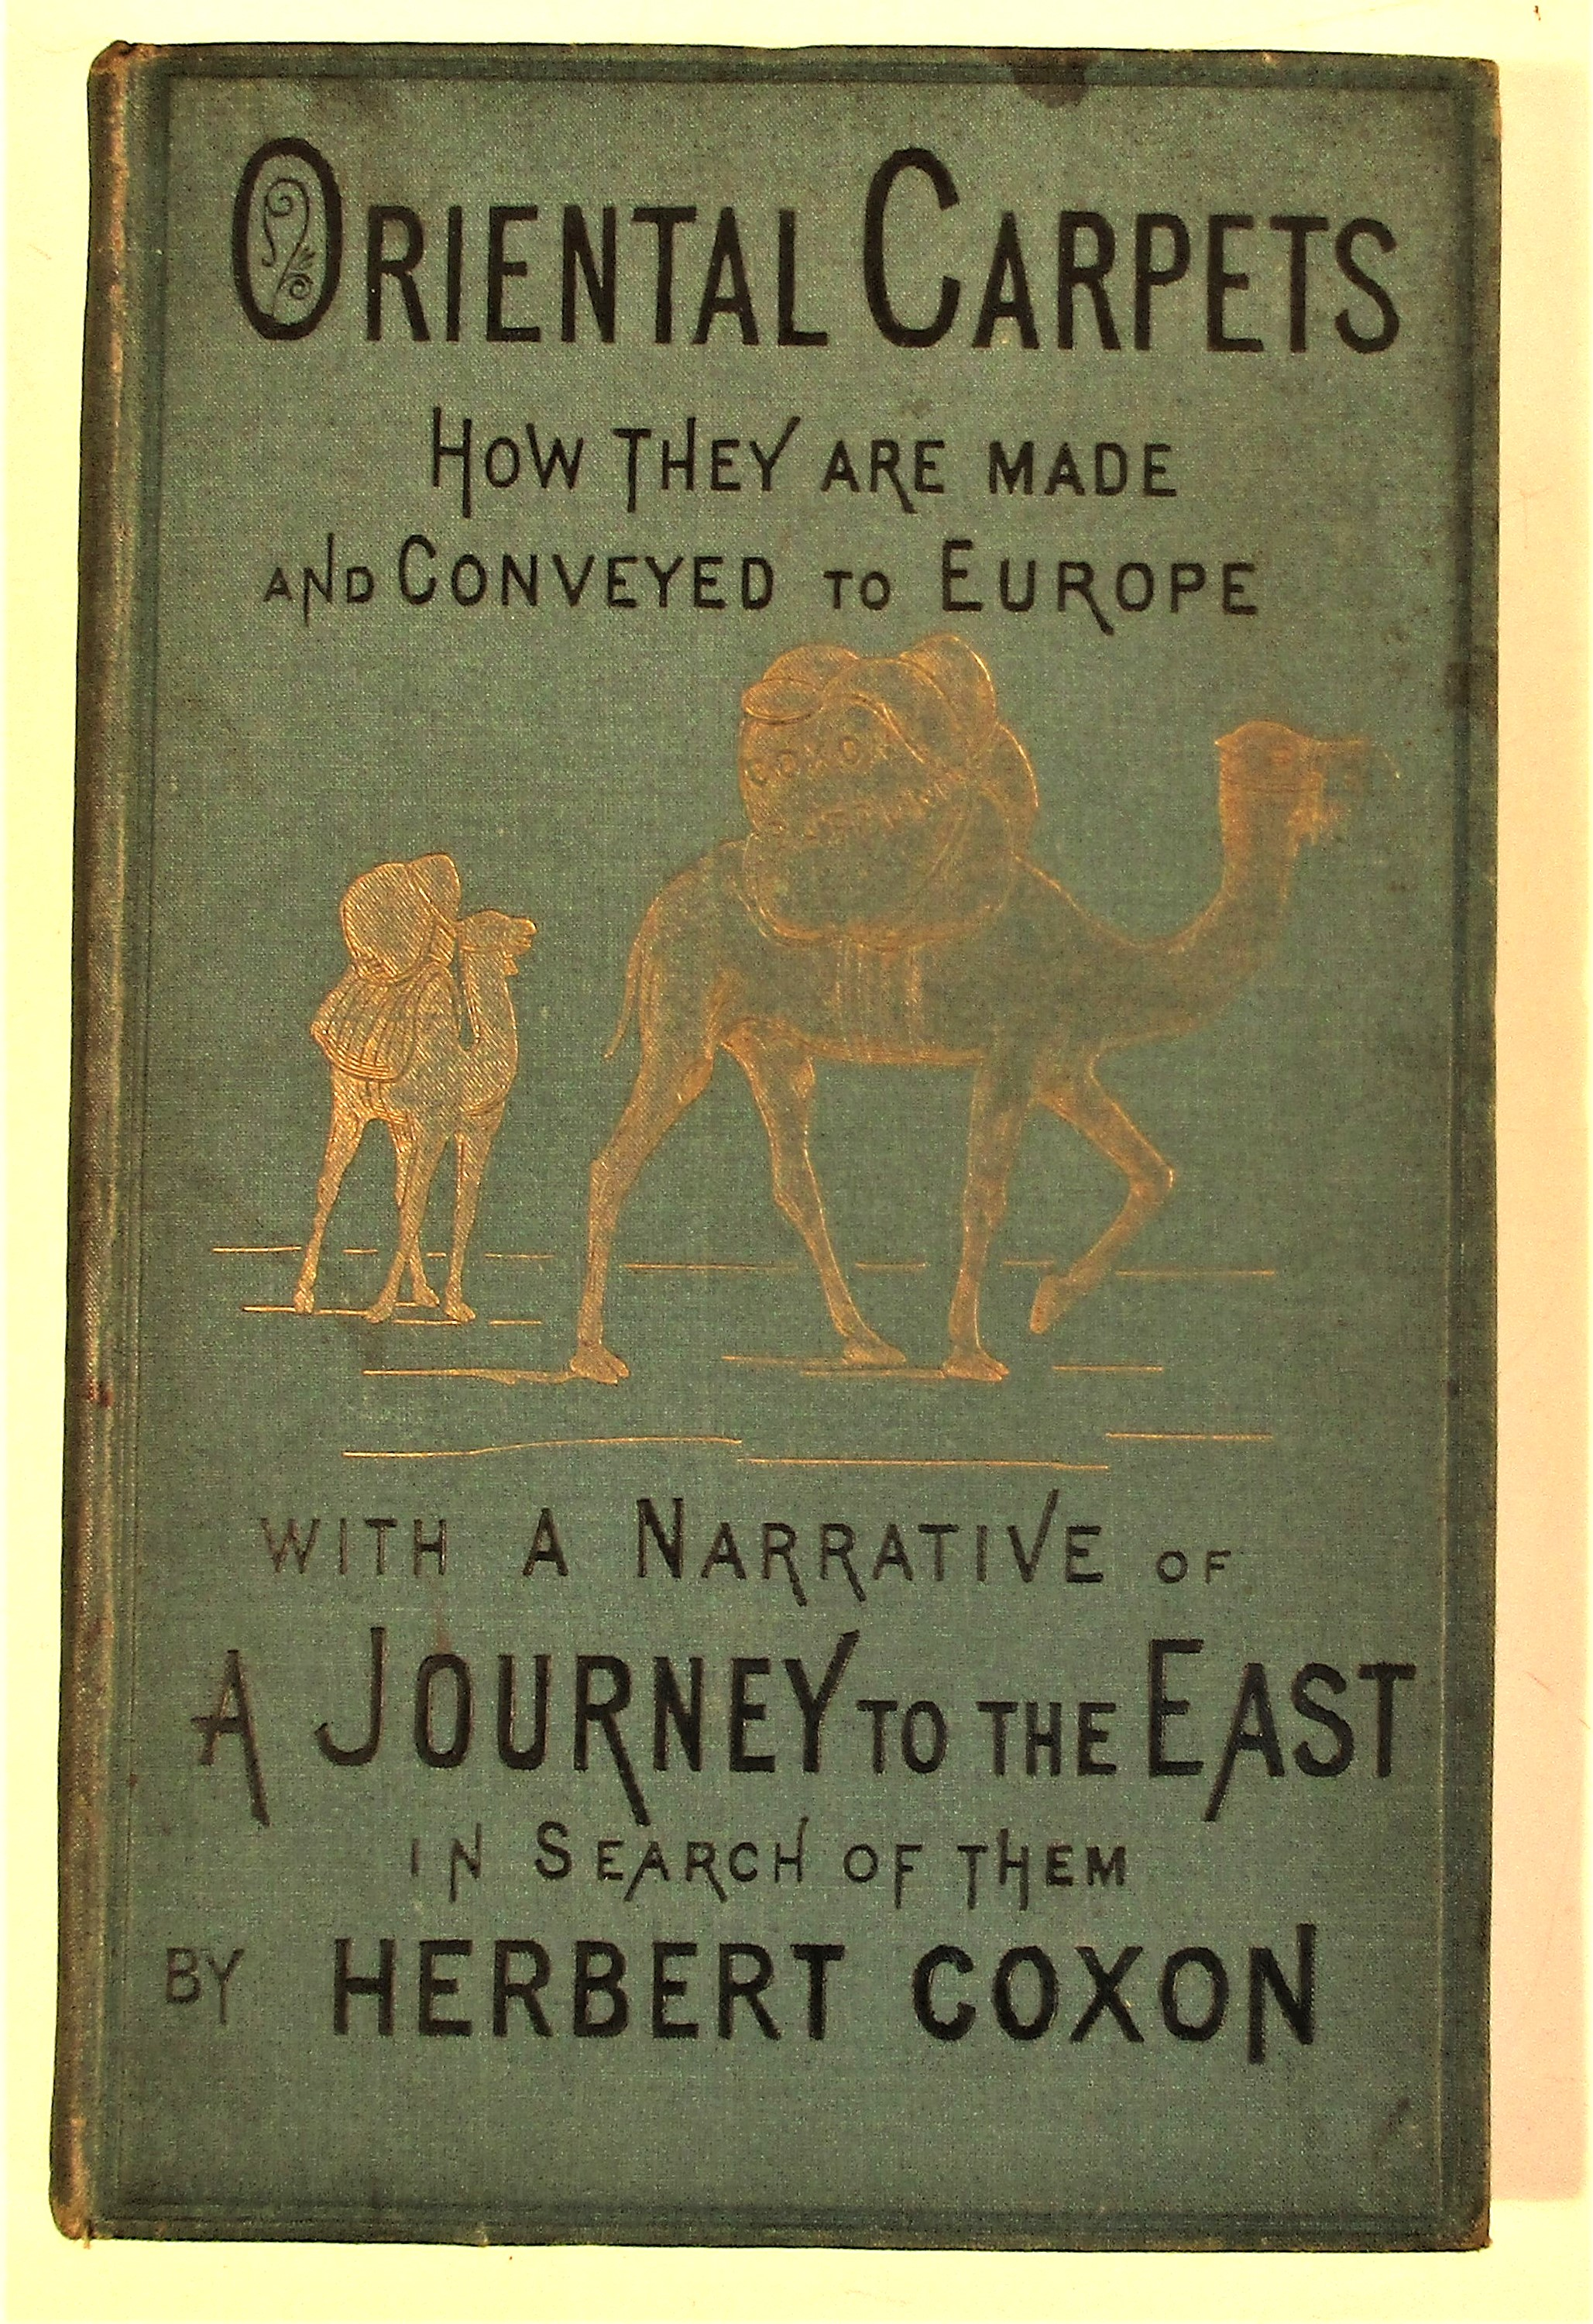 Herbert Coxon, Oriental Carpets, How they are Made and Conveyed to Europe, with a Narative of a